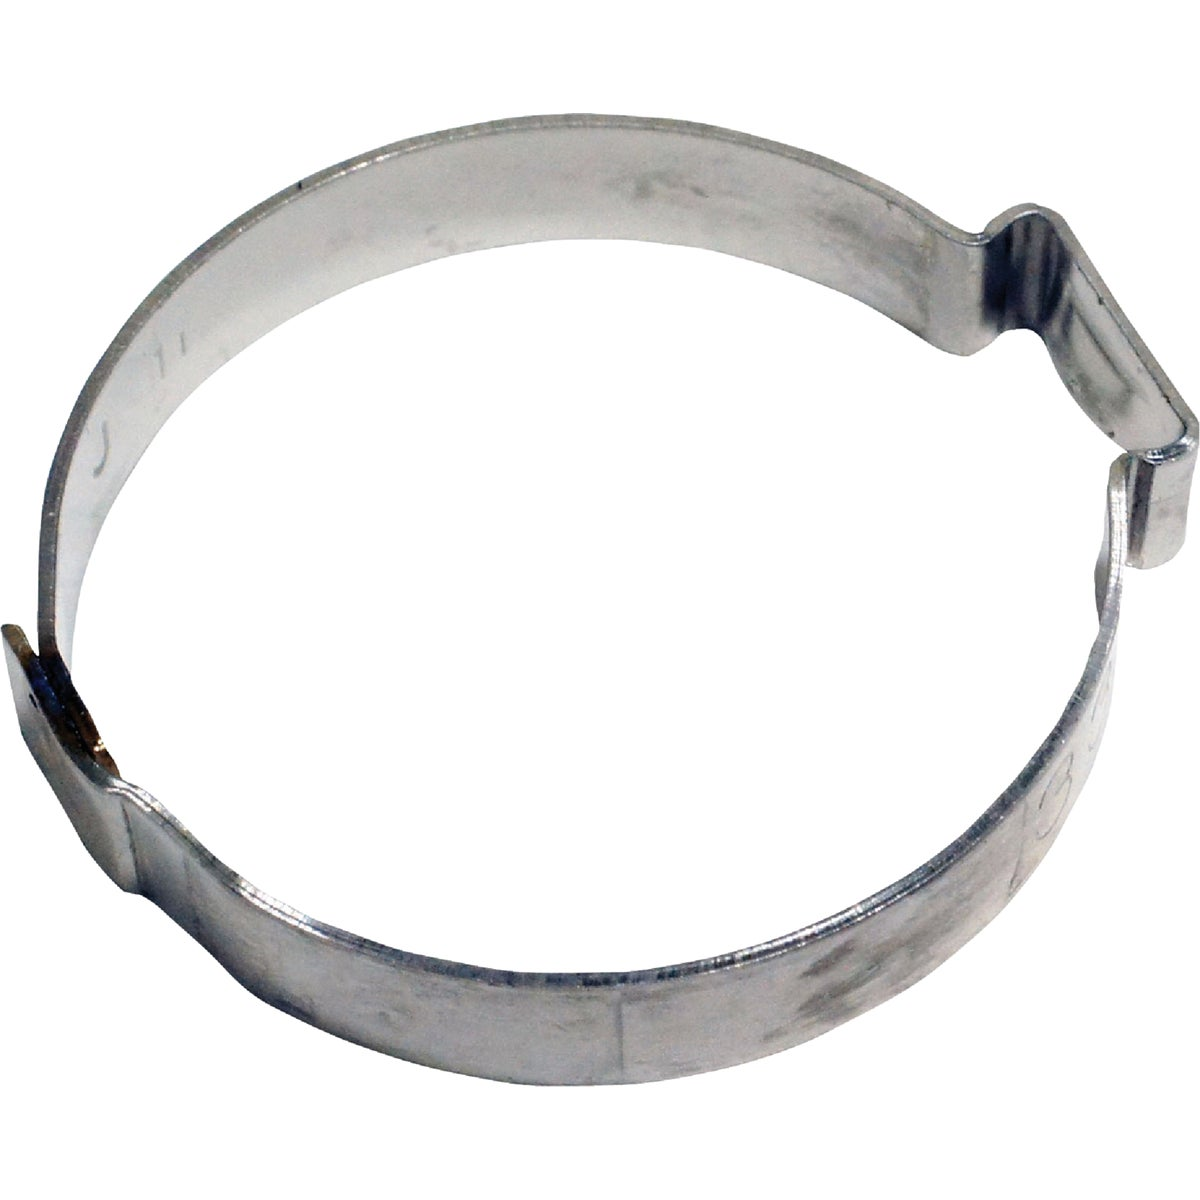 "10PK 1-5/16"" CRIMP CLAMP"